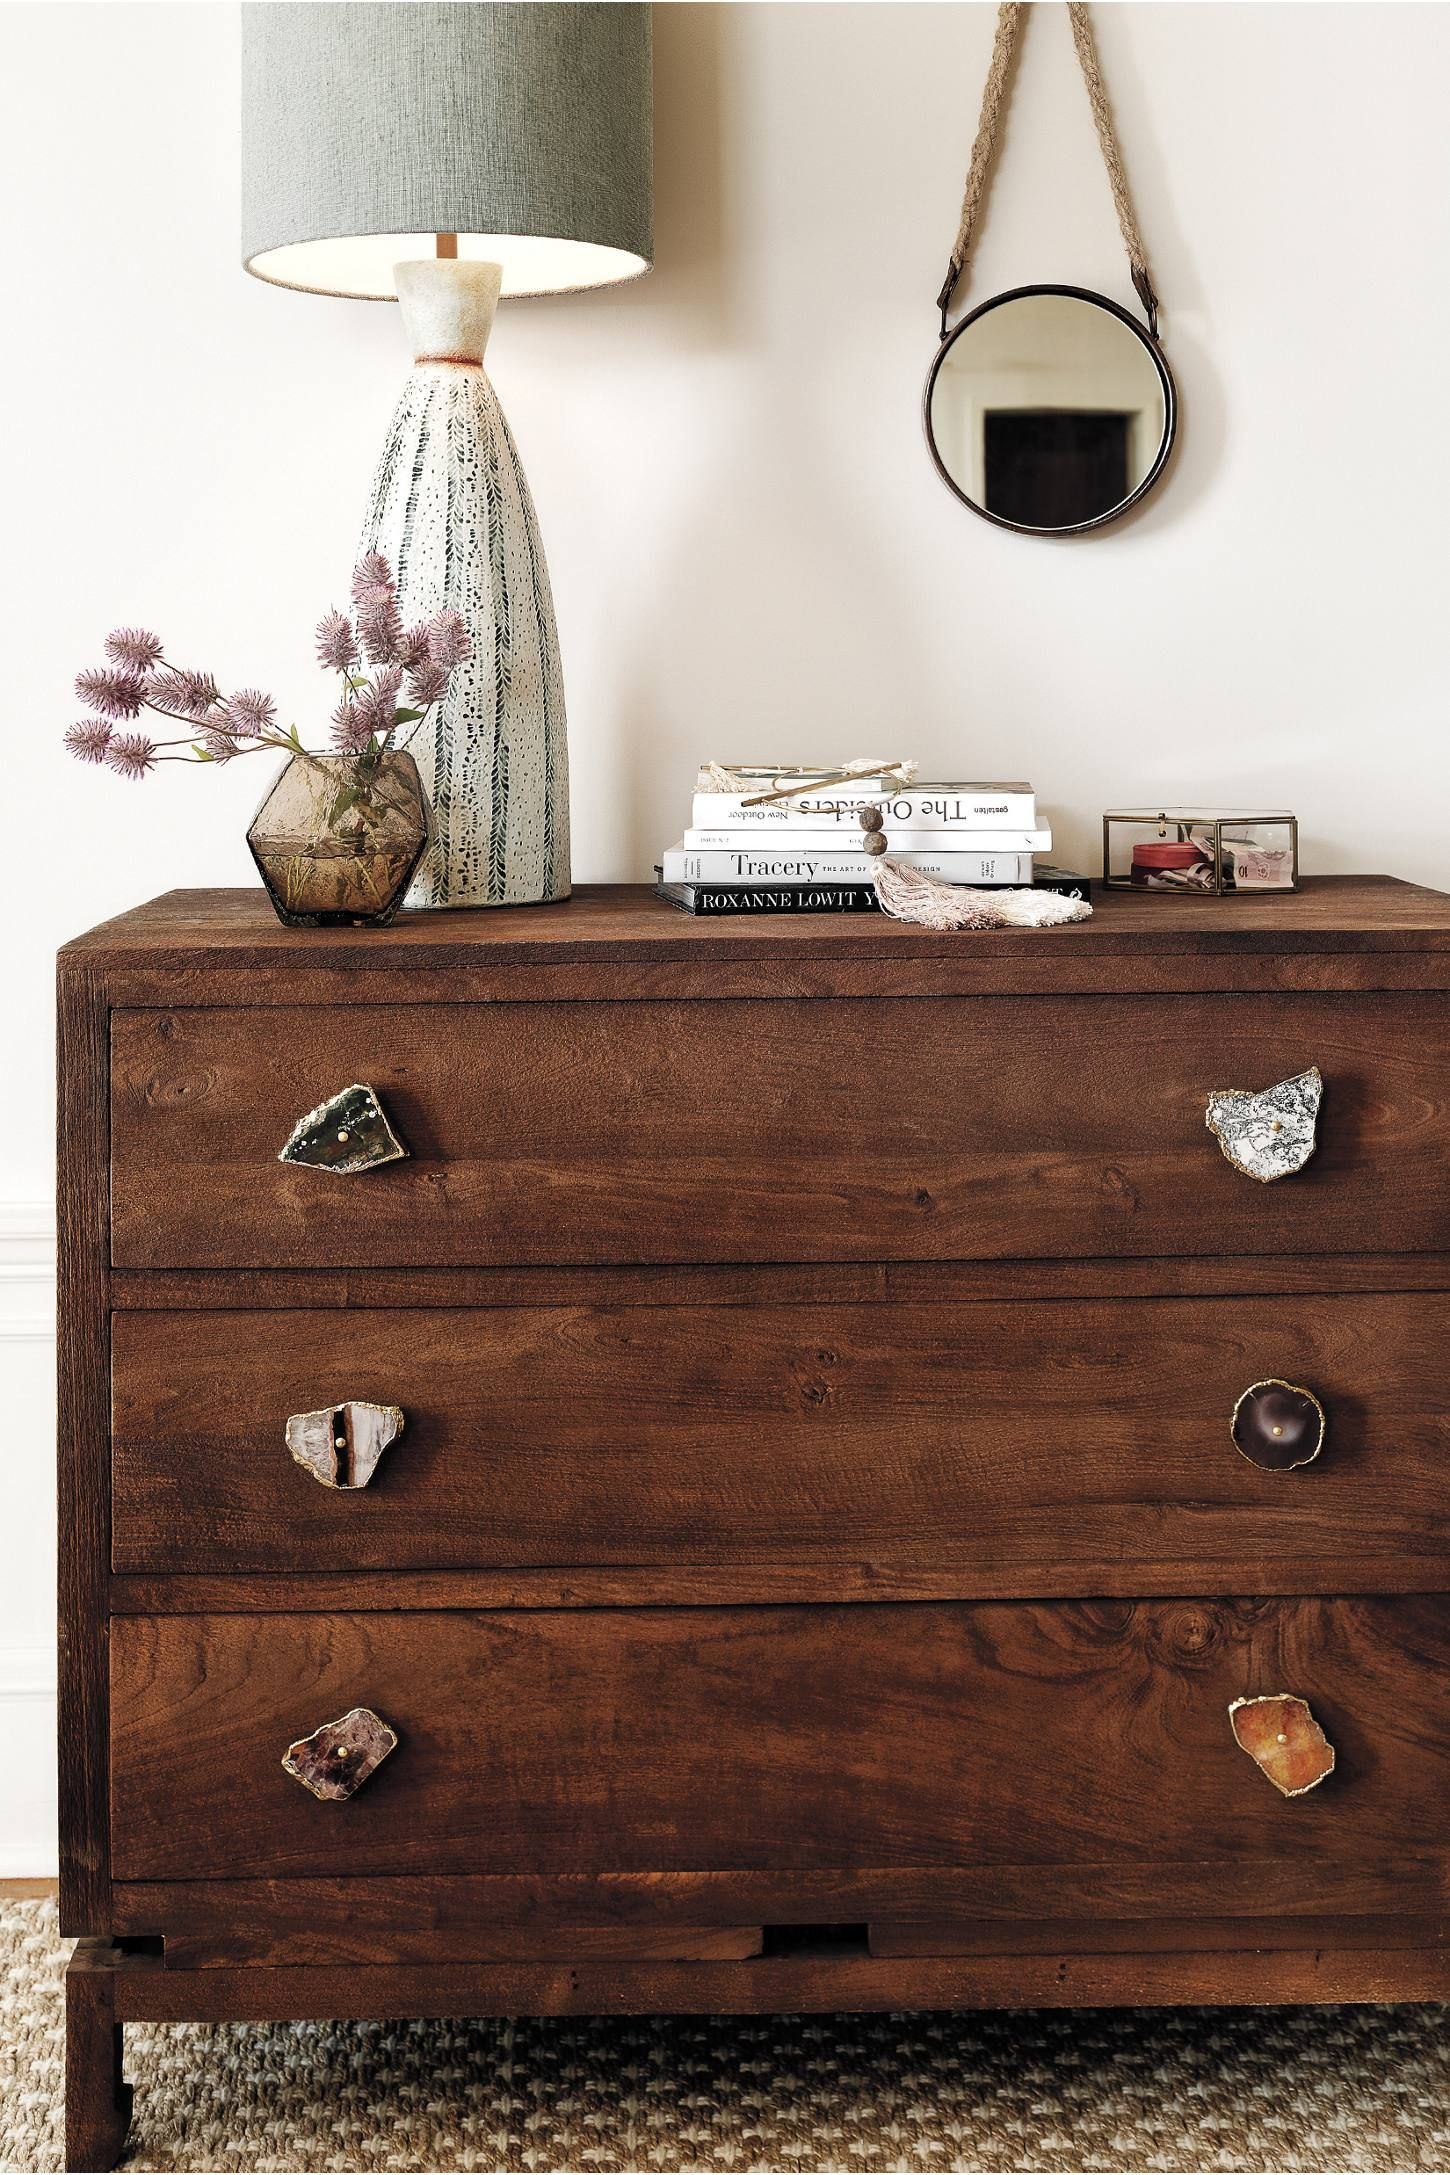 Swirled geode knob anthropologie detail and shopping